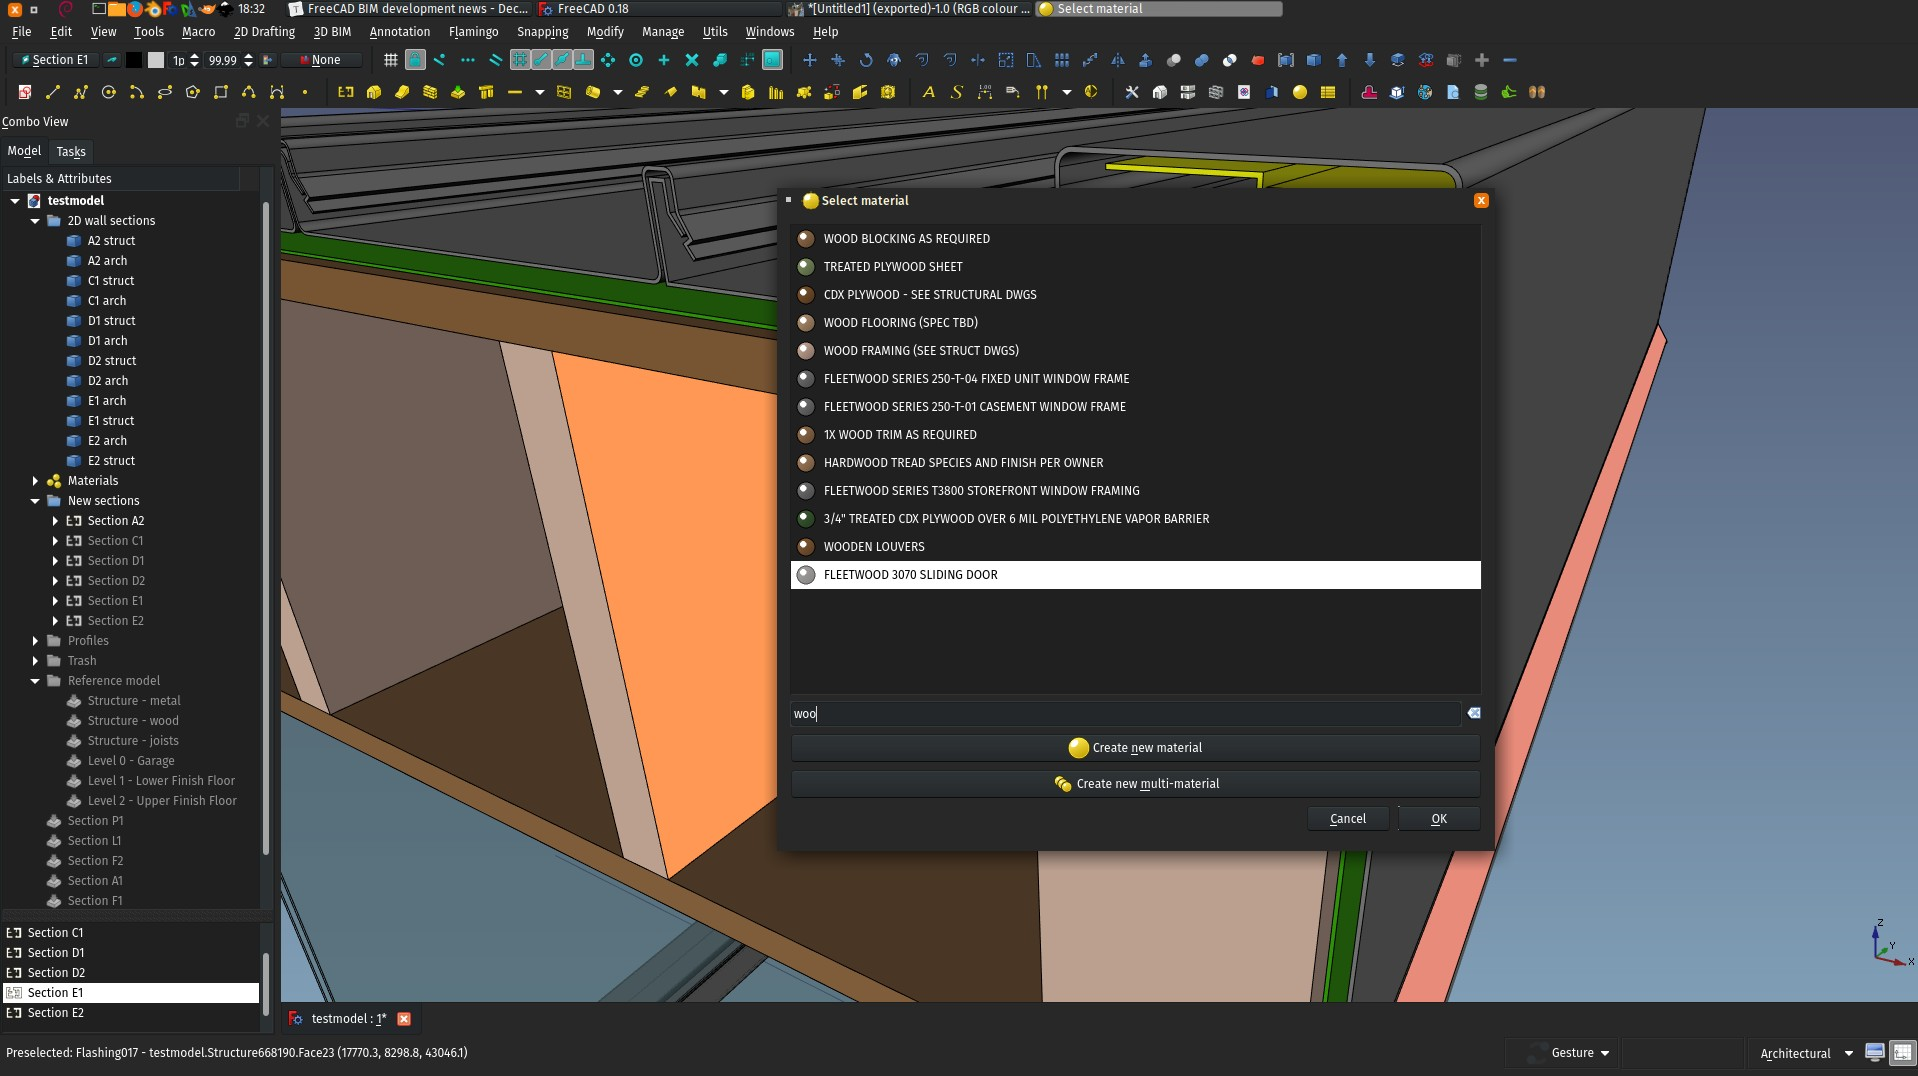 screenshot showing the material chooser